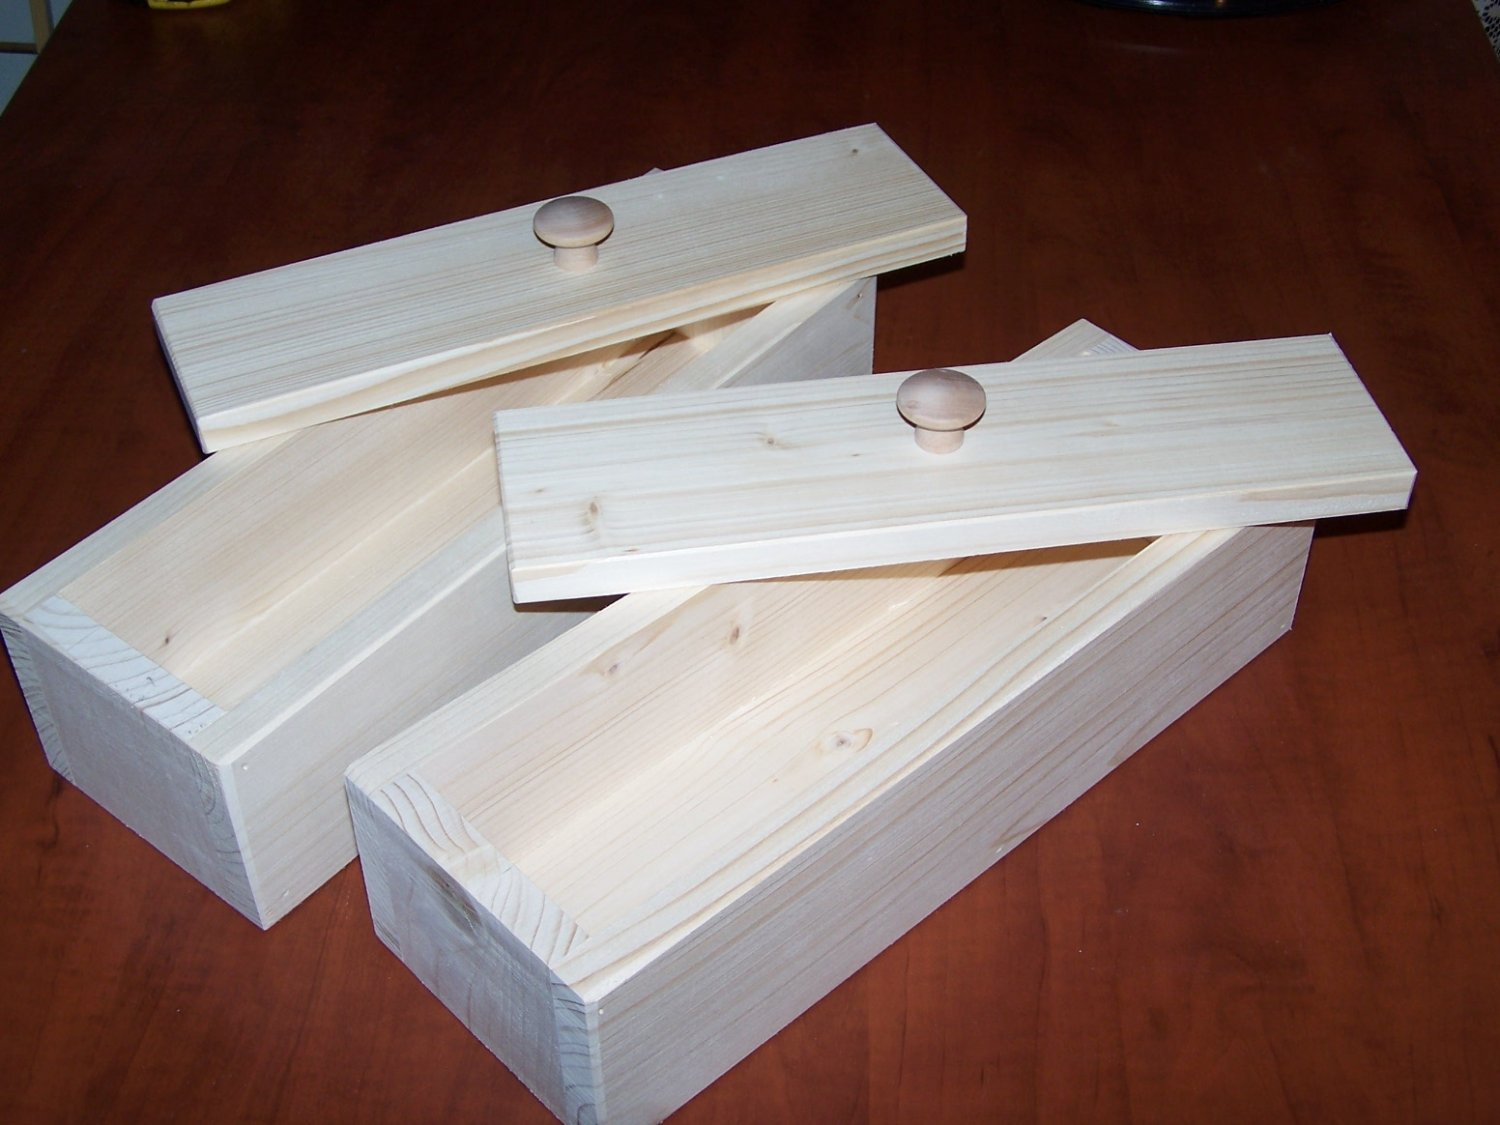 A LOT OF 2 WOOD WOODEN SOAP MOLD TO MAKE 4-5 LB LOAF